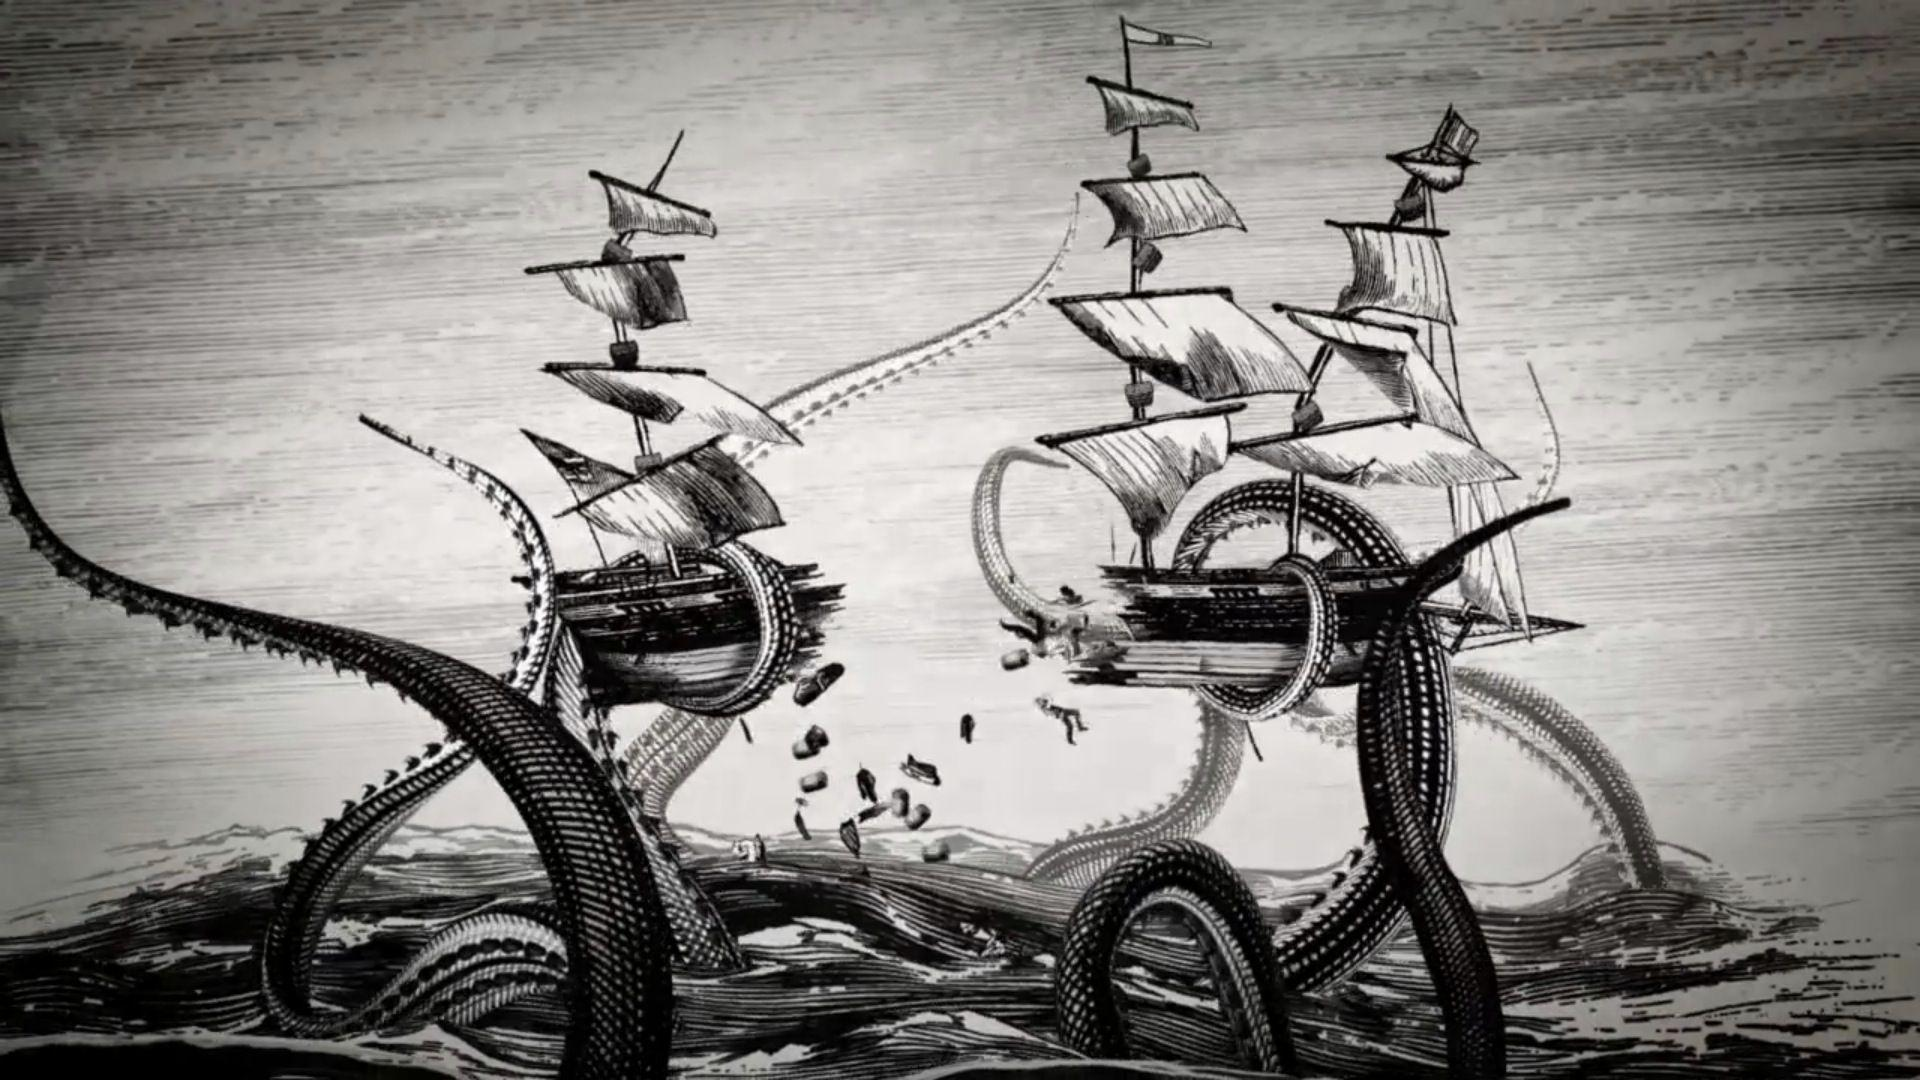 Kraken wallpapers wallpaper cave - Kraken rum pictures ...